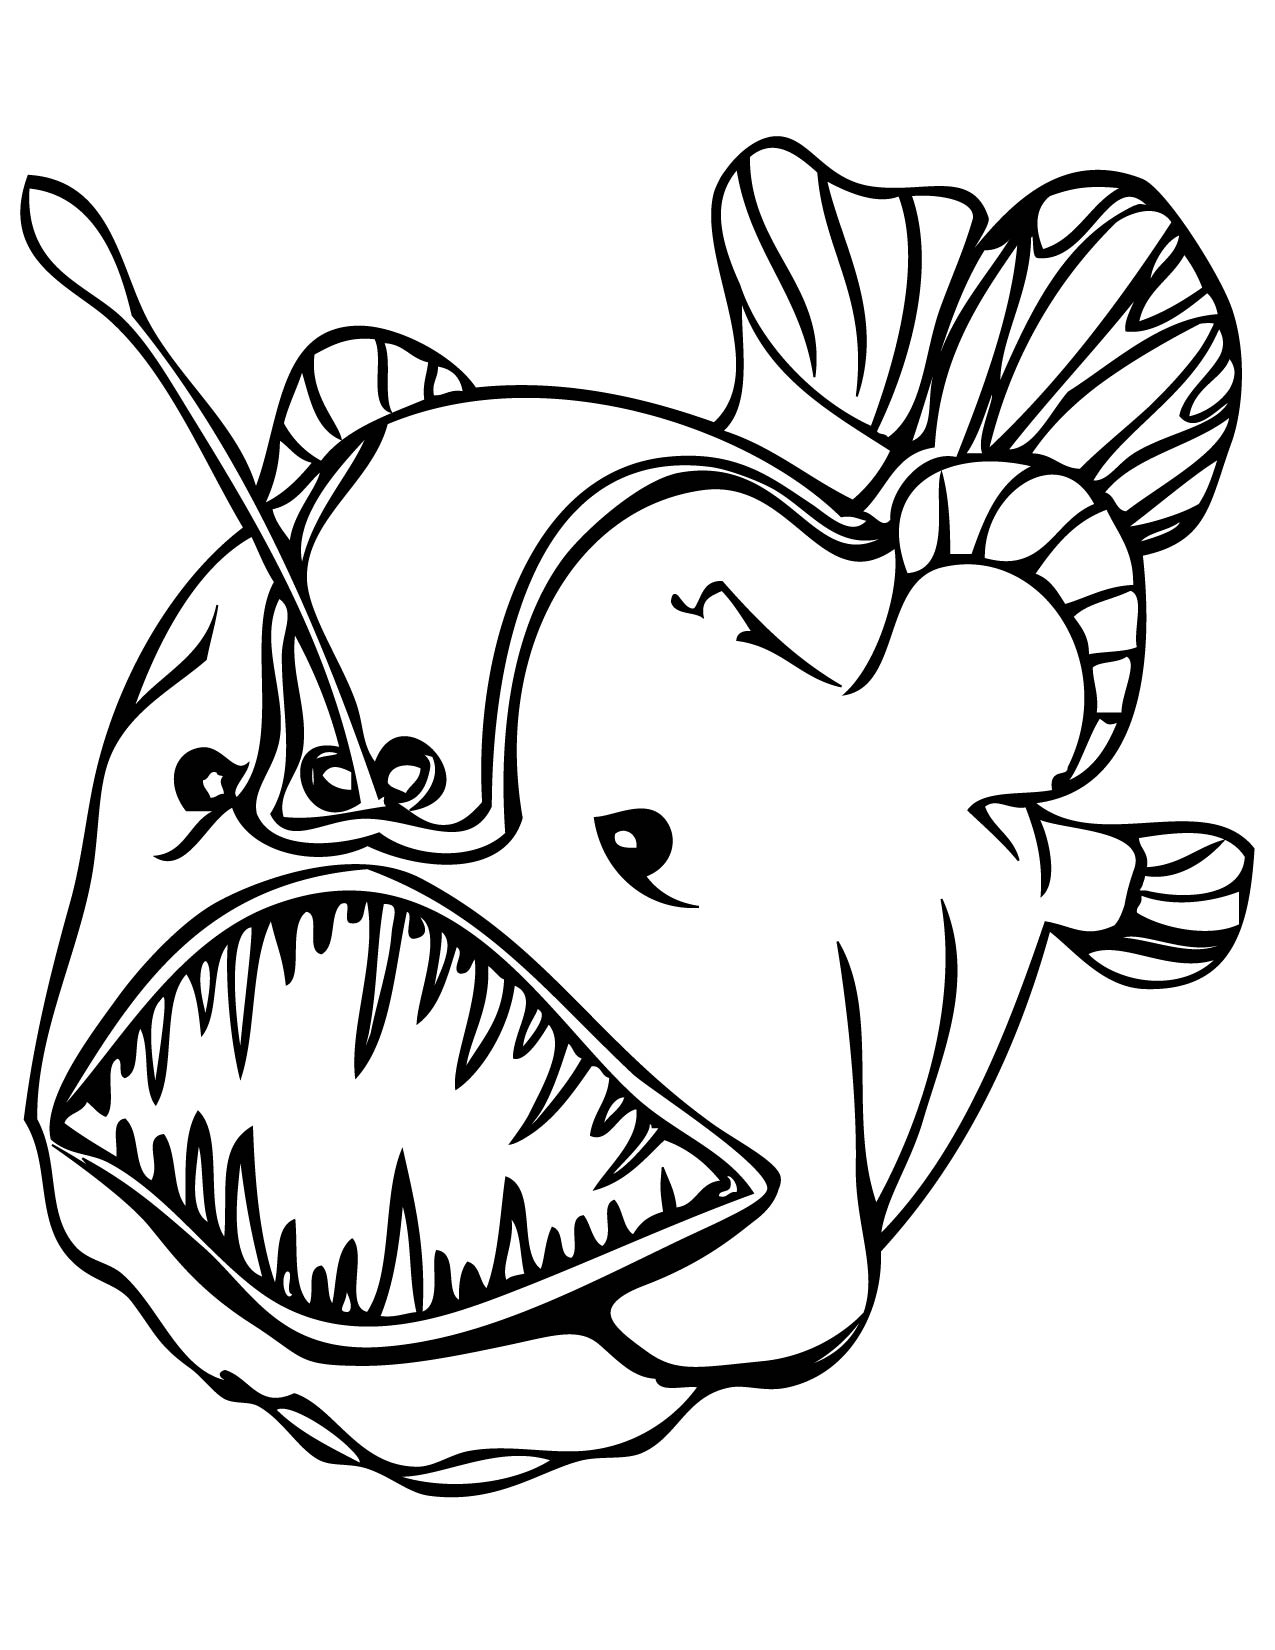 Fanfin Anglerfish Coloring Page